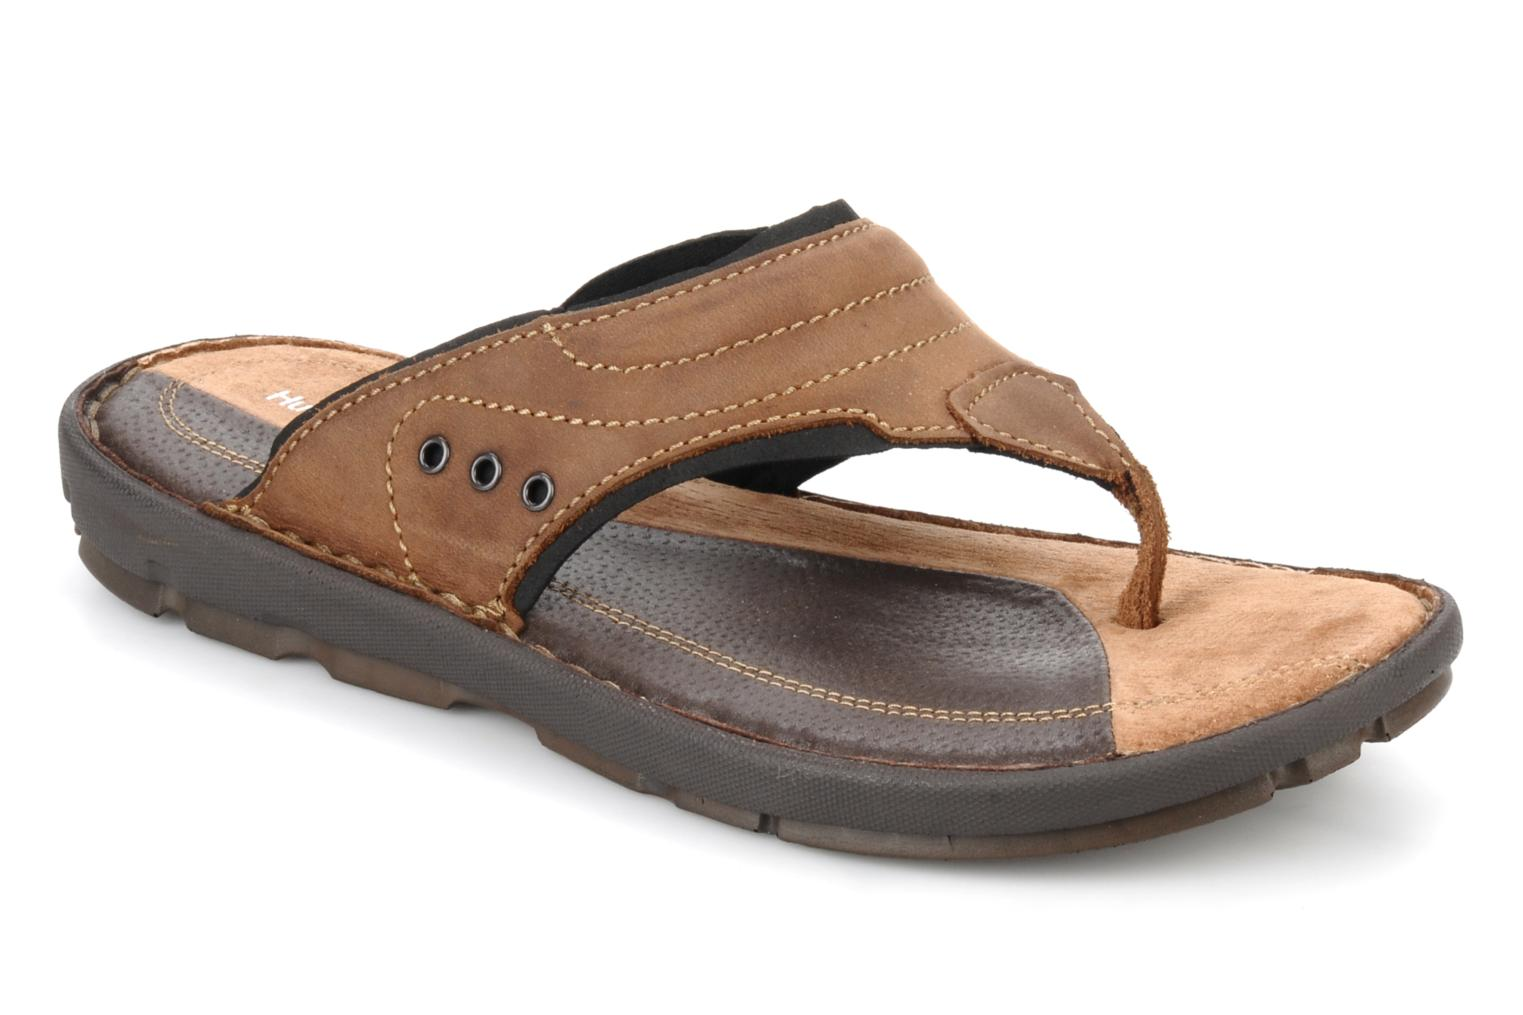 Free Shipping on many items across the worlds largest range of Hush Puppies Sandals and Flip Flops for Women. Find the perfect Christmas gift ideas with eBay.